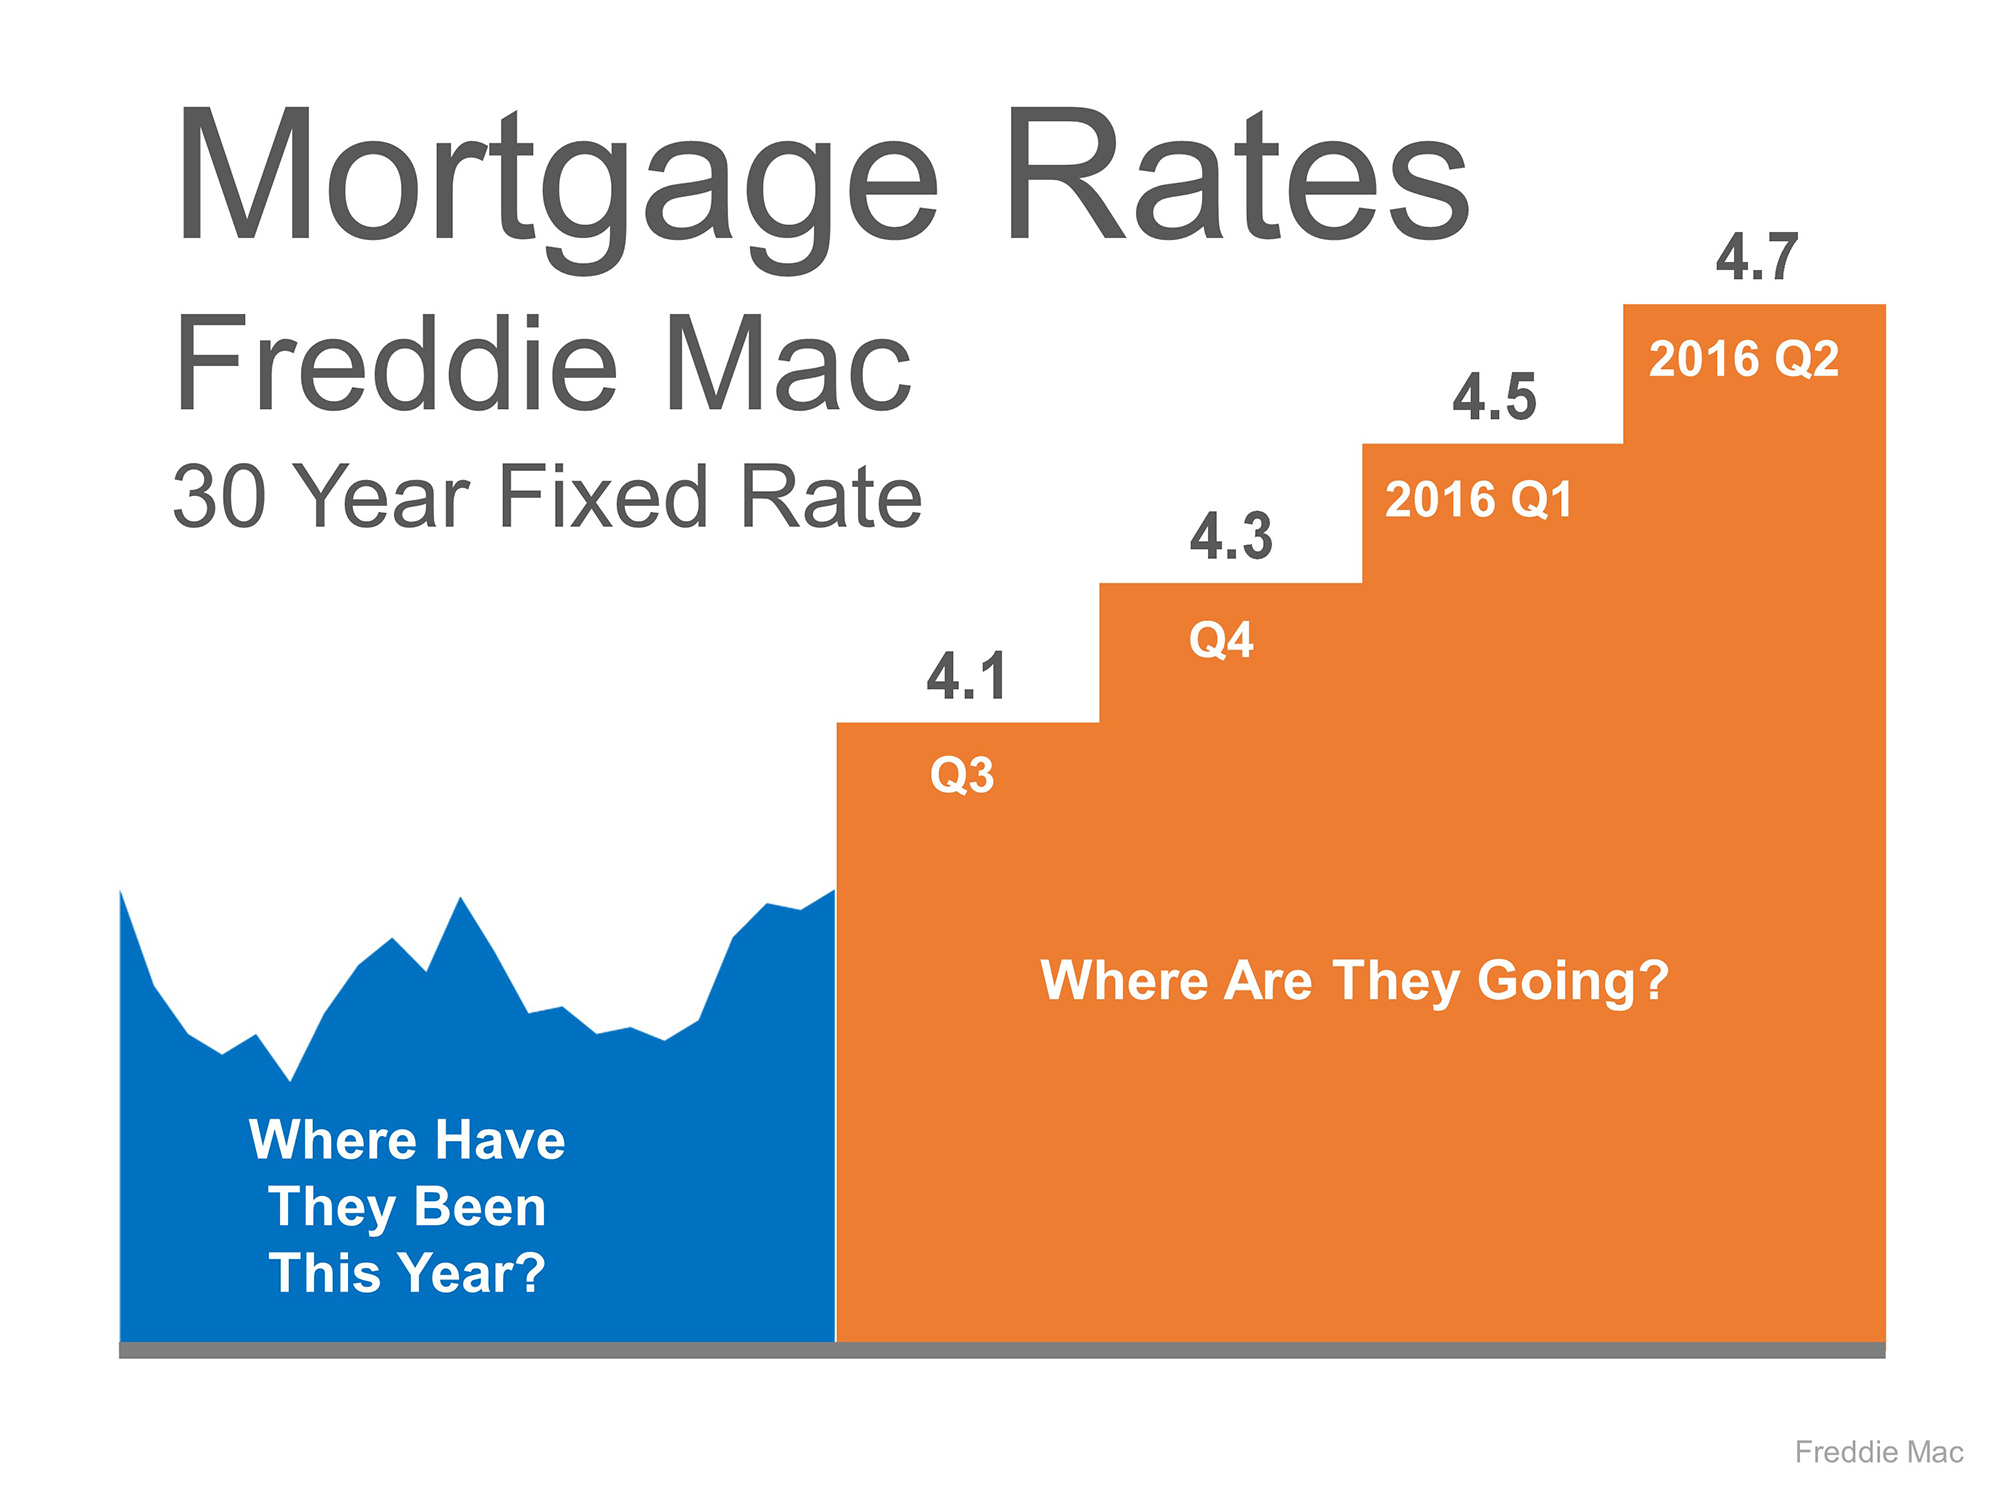 Freddie Mac Interest Rate Forecast